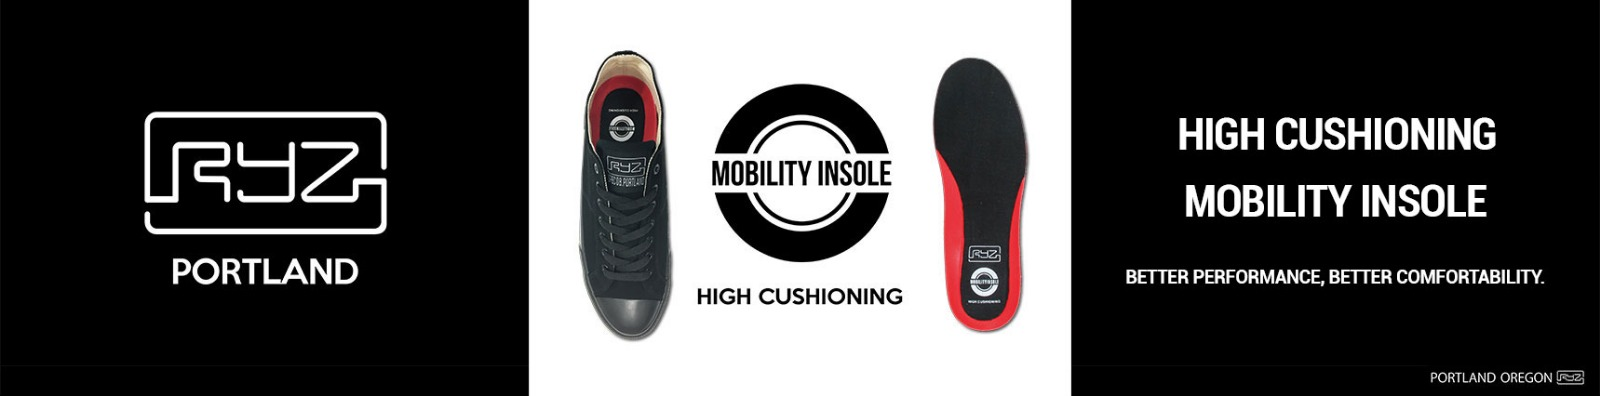 MOBILITY INSOLE